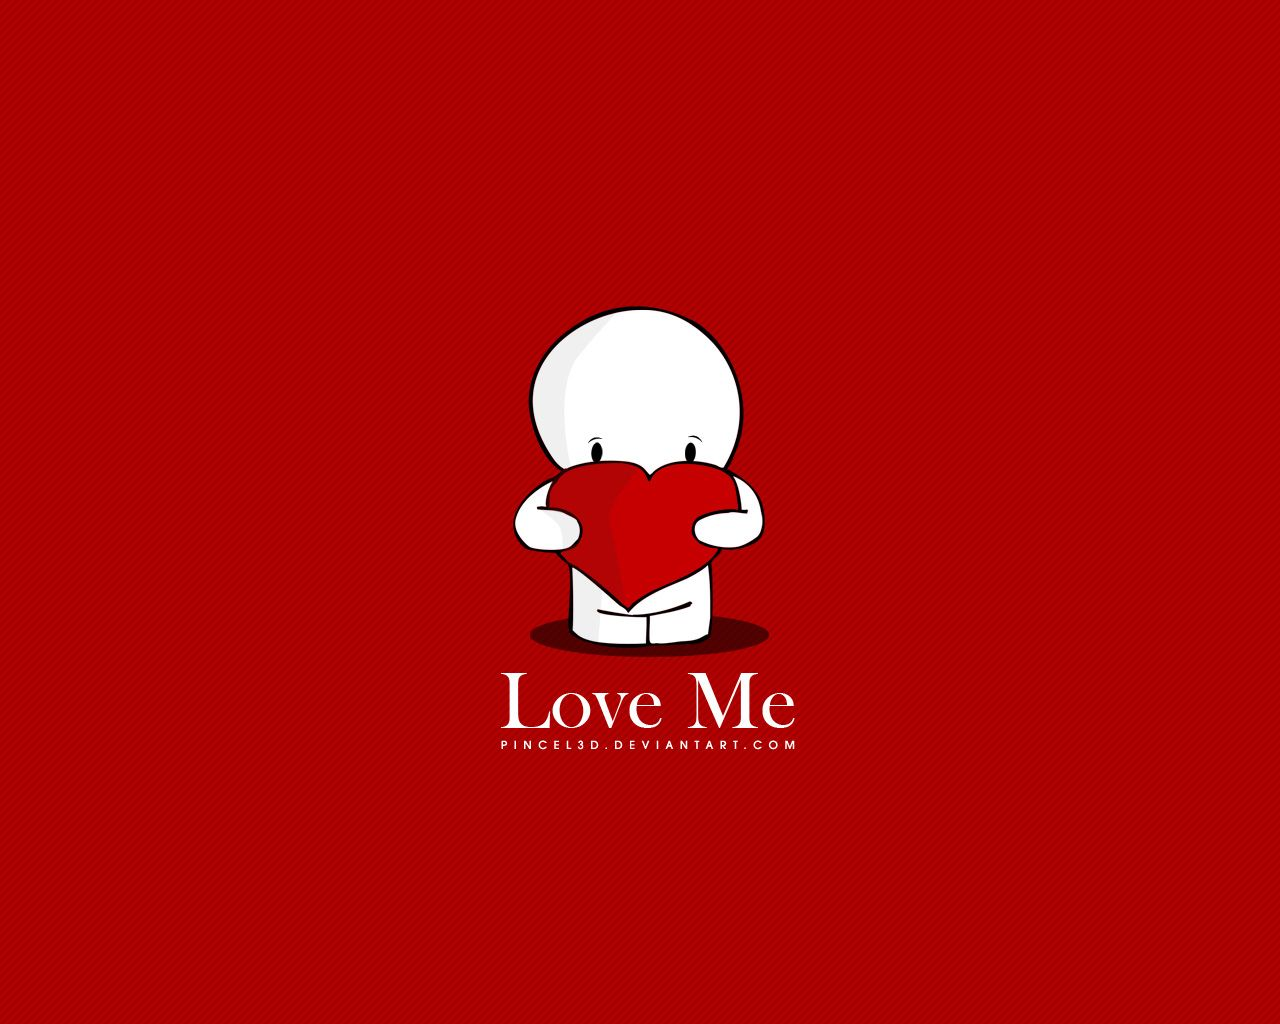 Its Valentine S Day Today And The Air Is Full Of Love Description